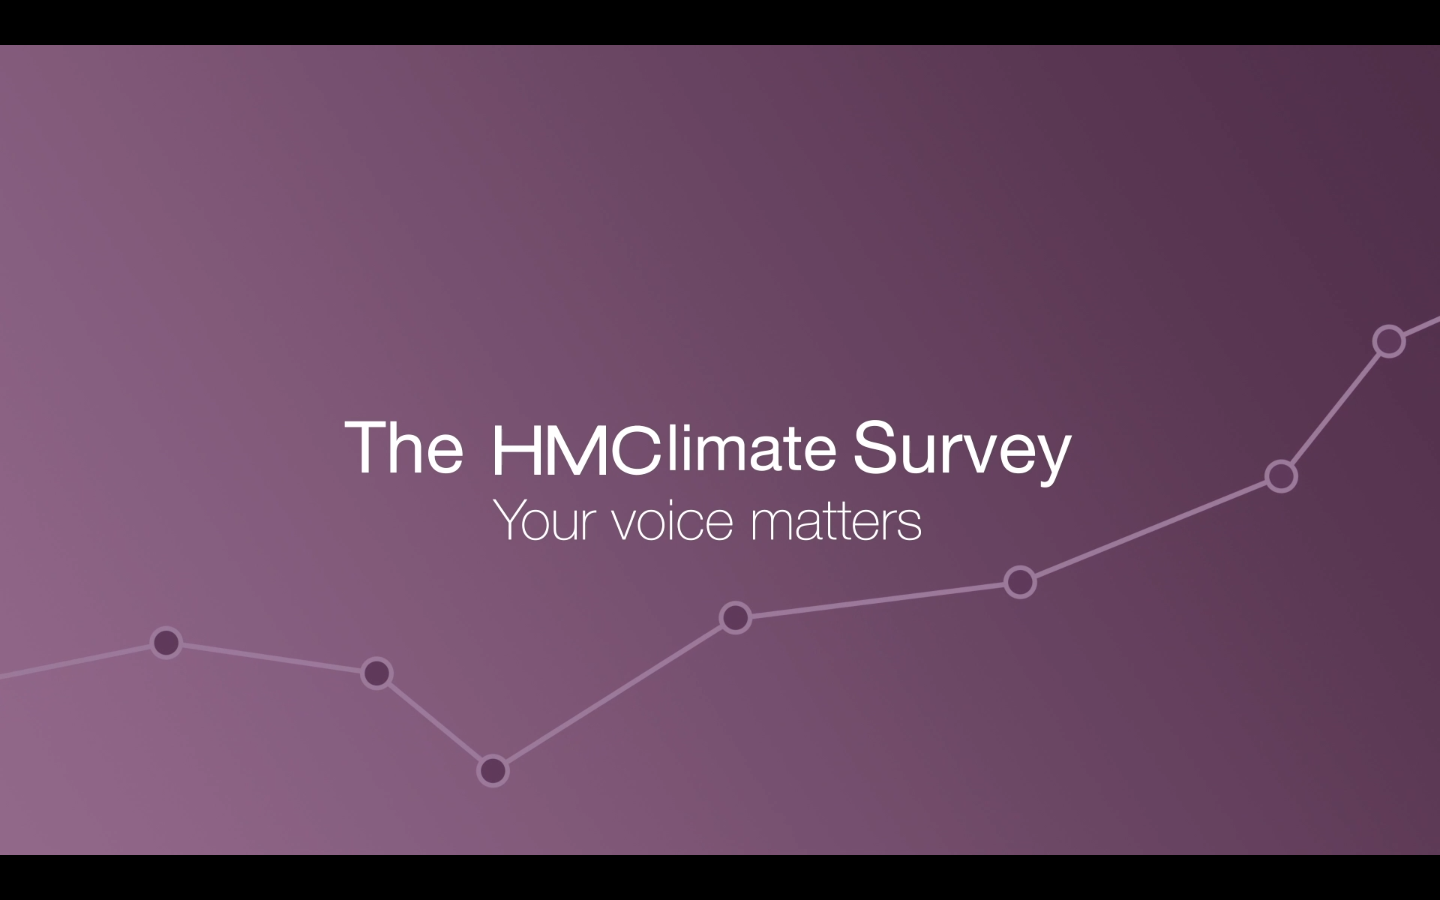 https://malotastudio.net/project/hm-climate-survey/